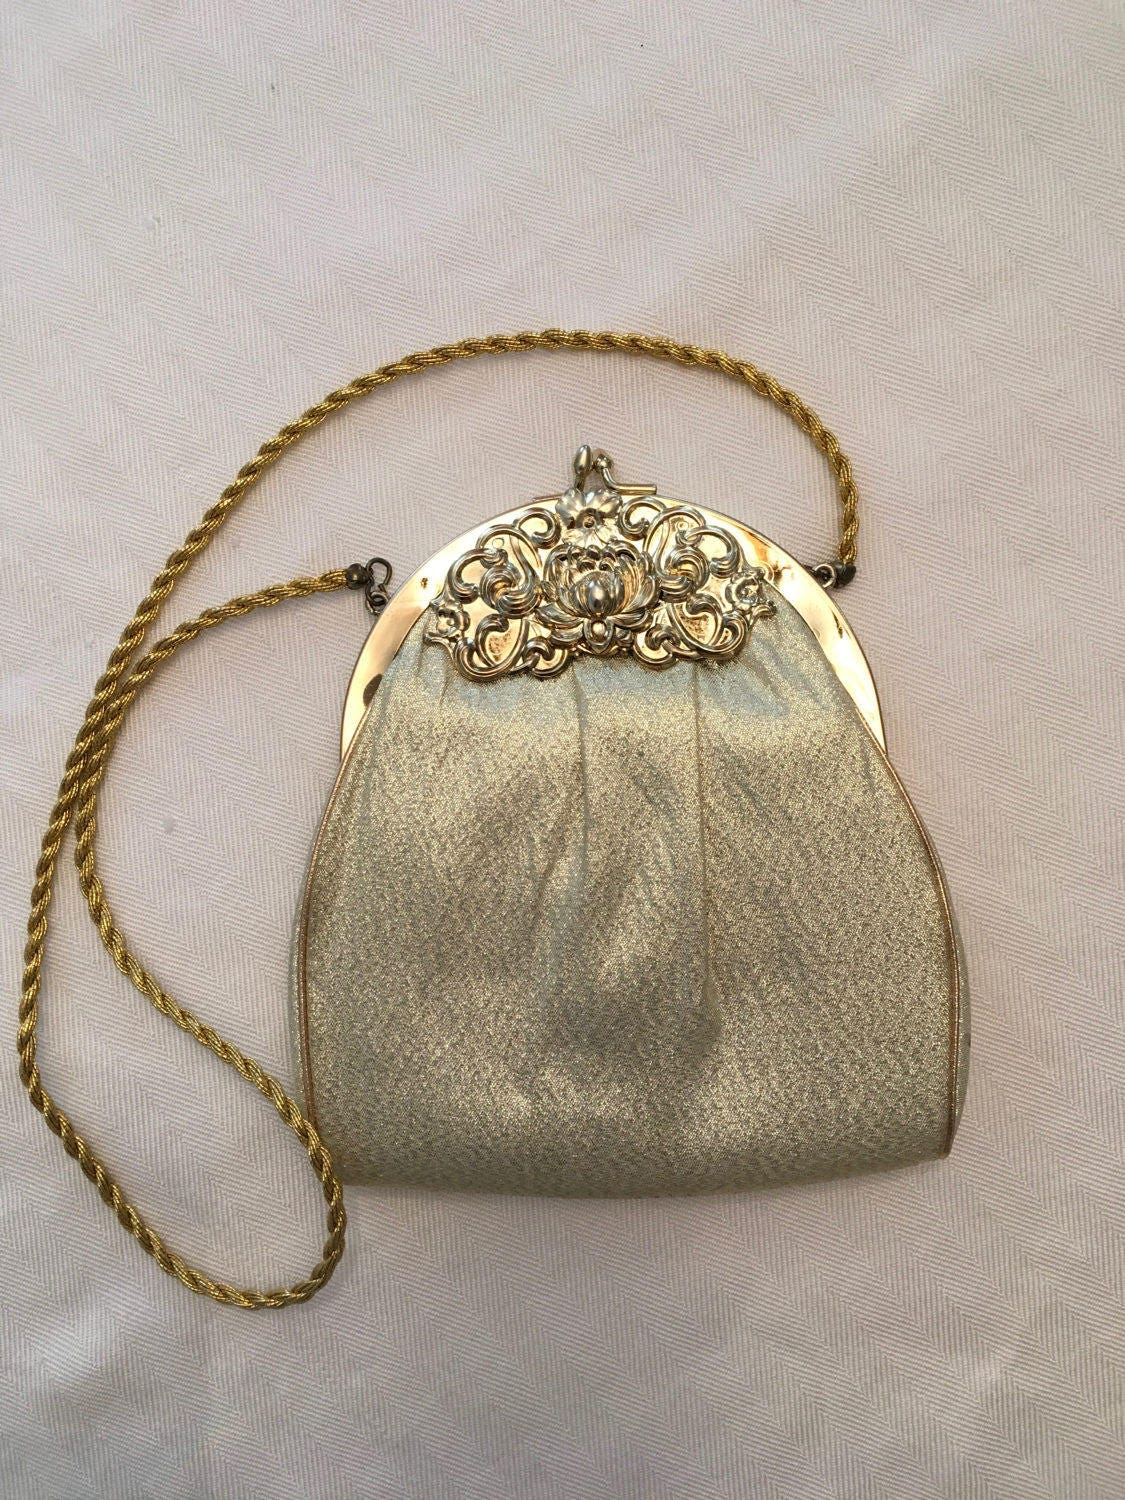 58eb89275098 HL Gold lame evening bag with floral repousse frame